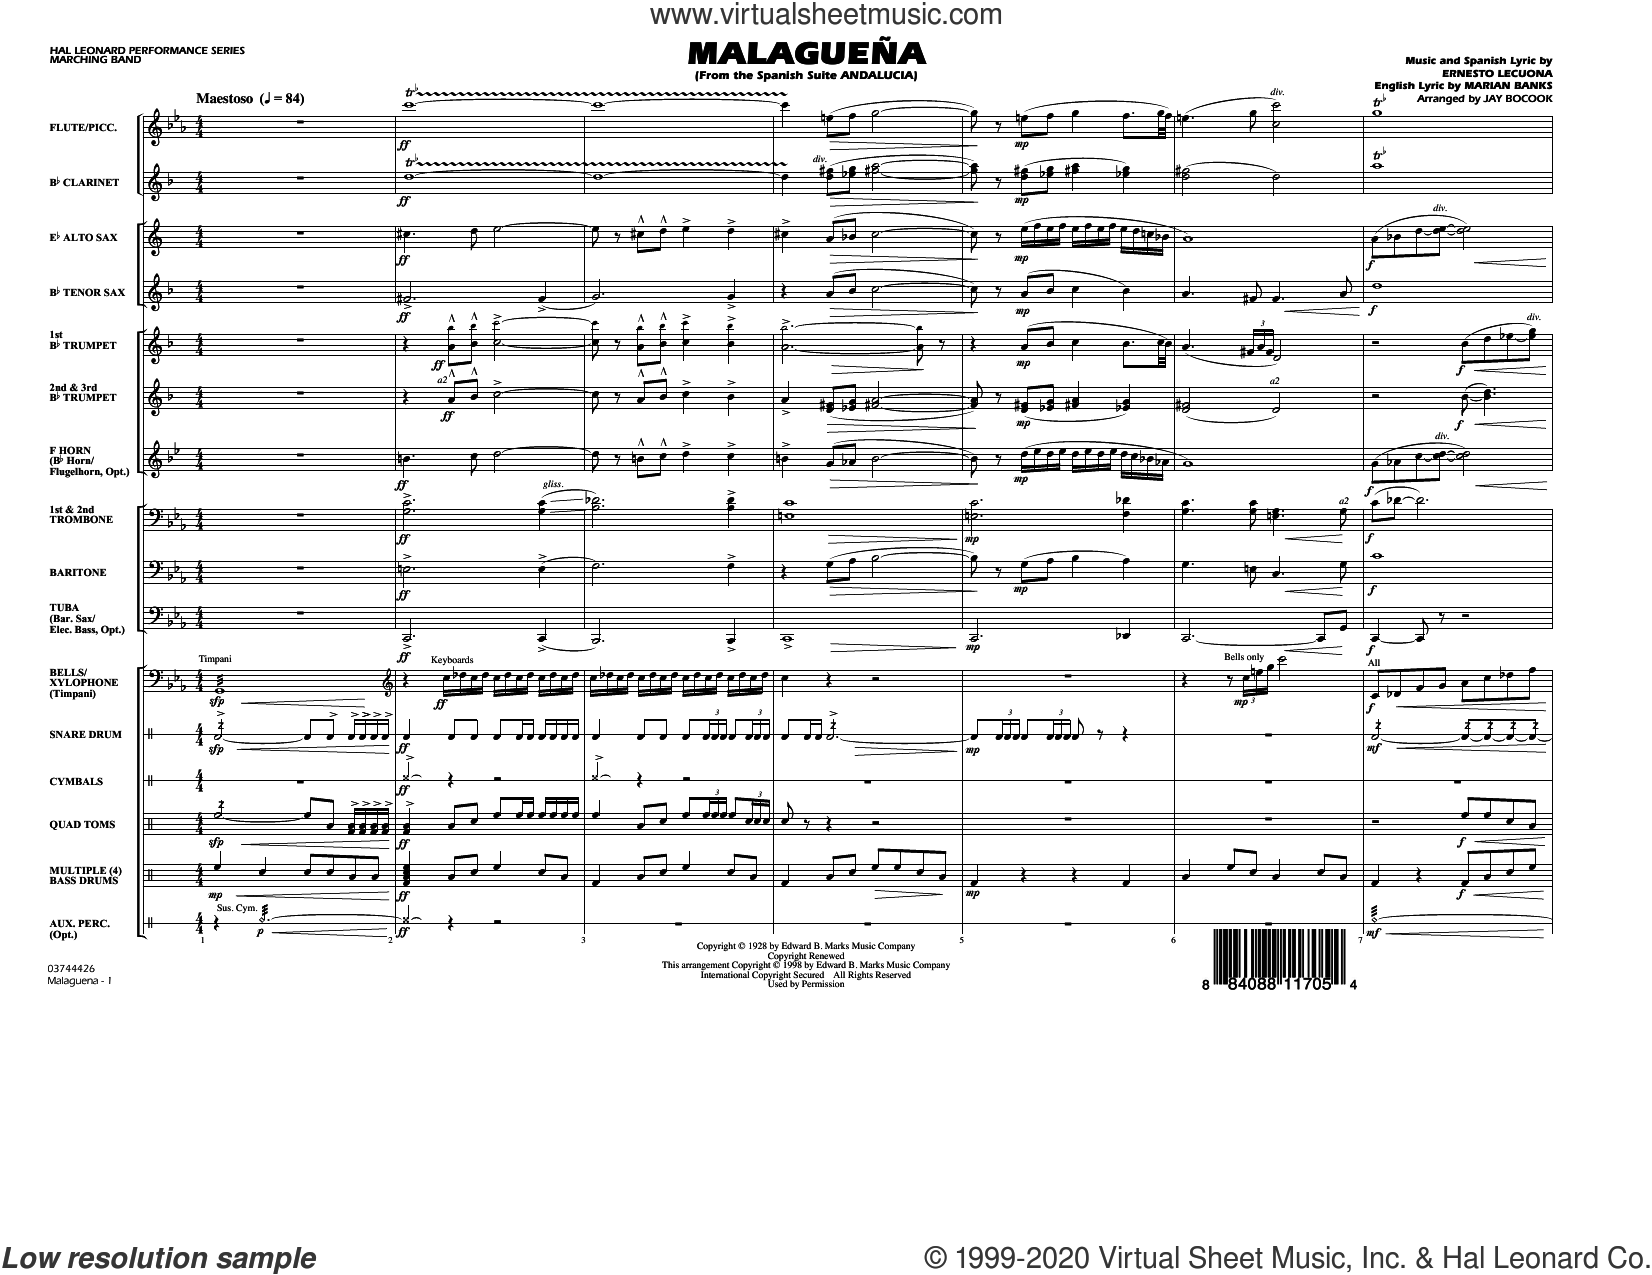 Malaguena (arr. Jay Bocook) (COMPLETE) sheet music for marching band by Ernesto Lecuona, Jay Bocook and Marian Banks, intermediate skill level